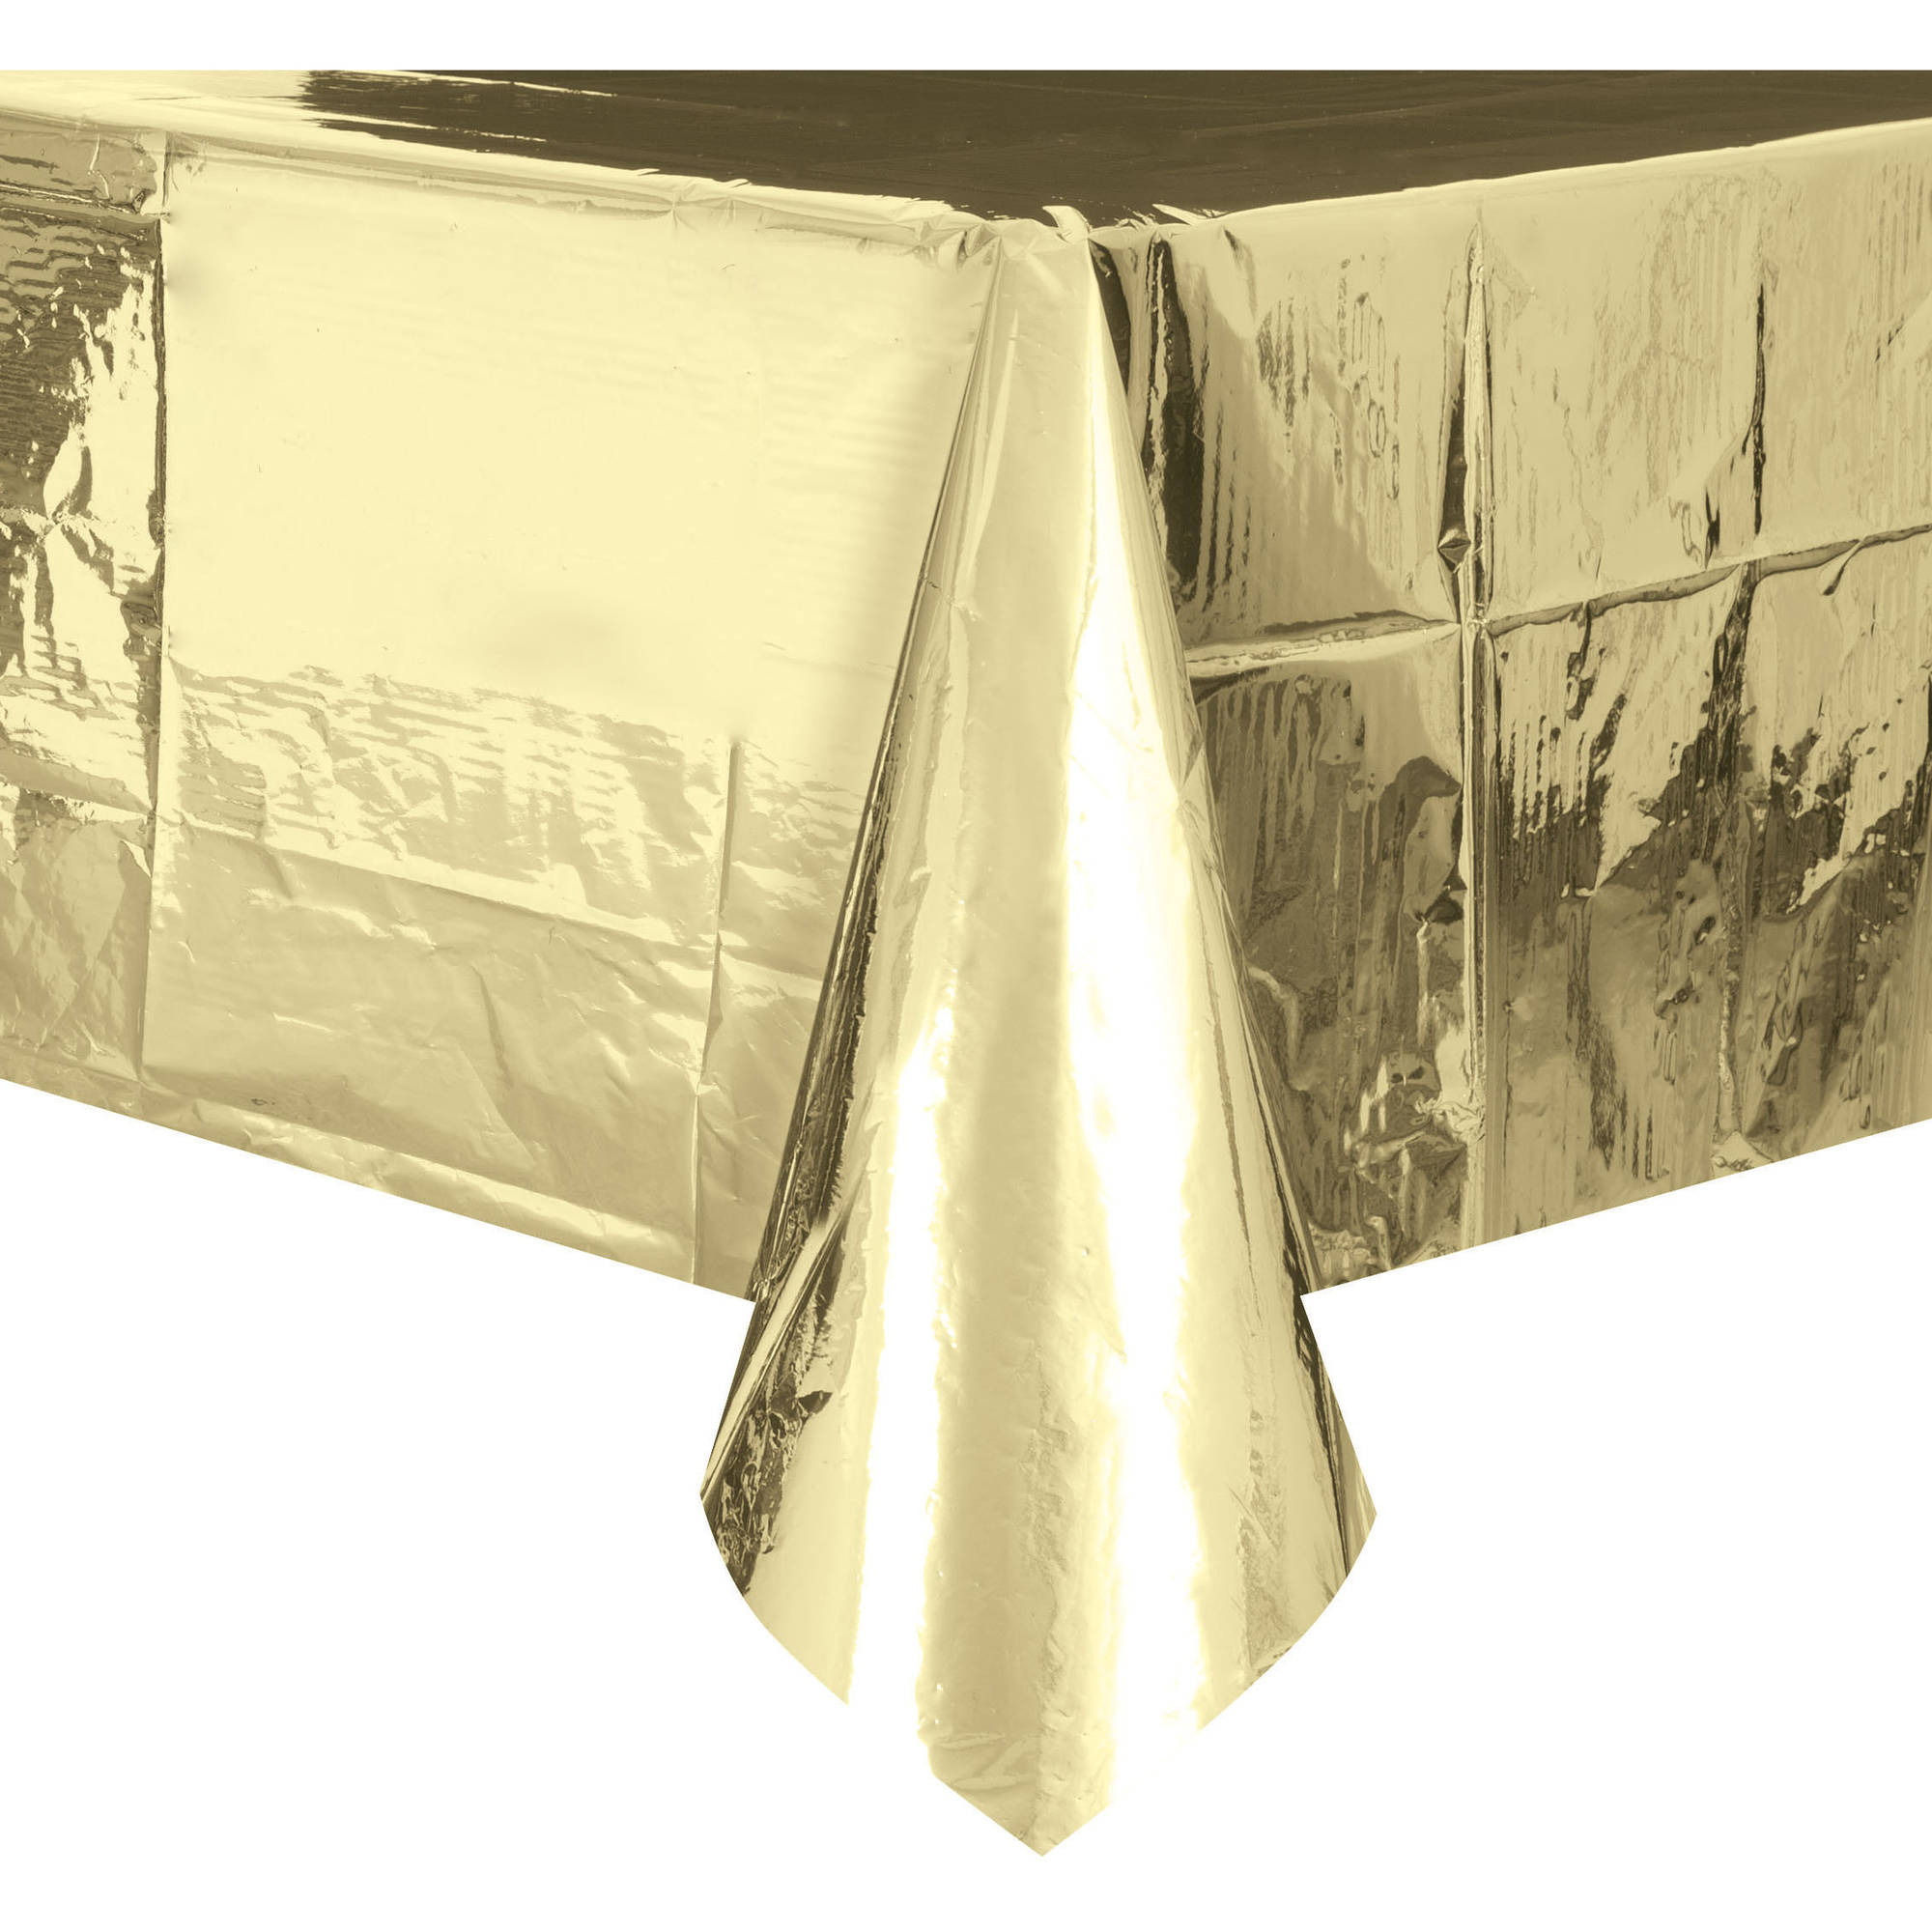 (2 pack) Foil Plastic Tablecloth, 108 x 54 in, Gold